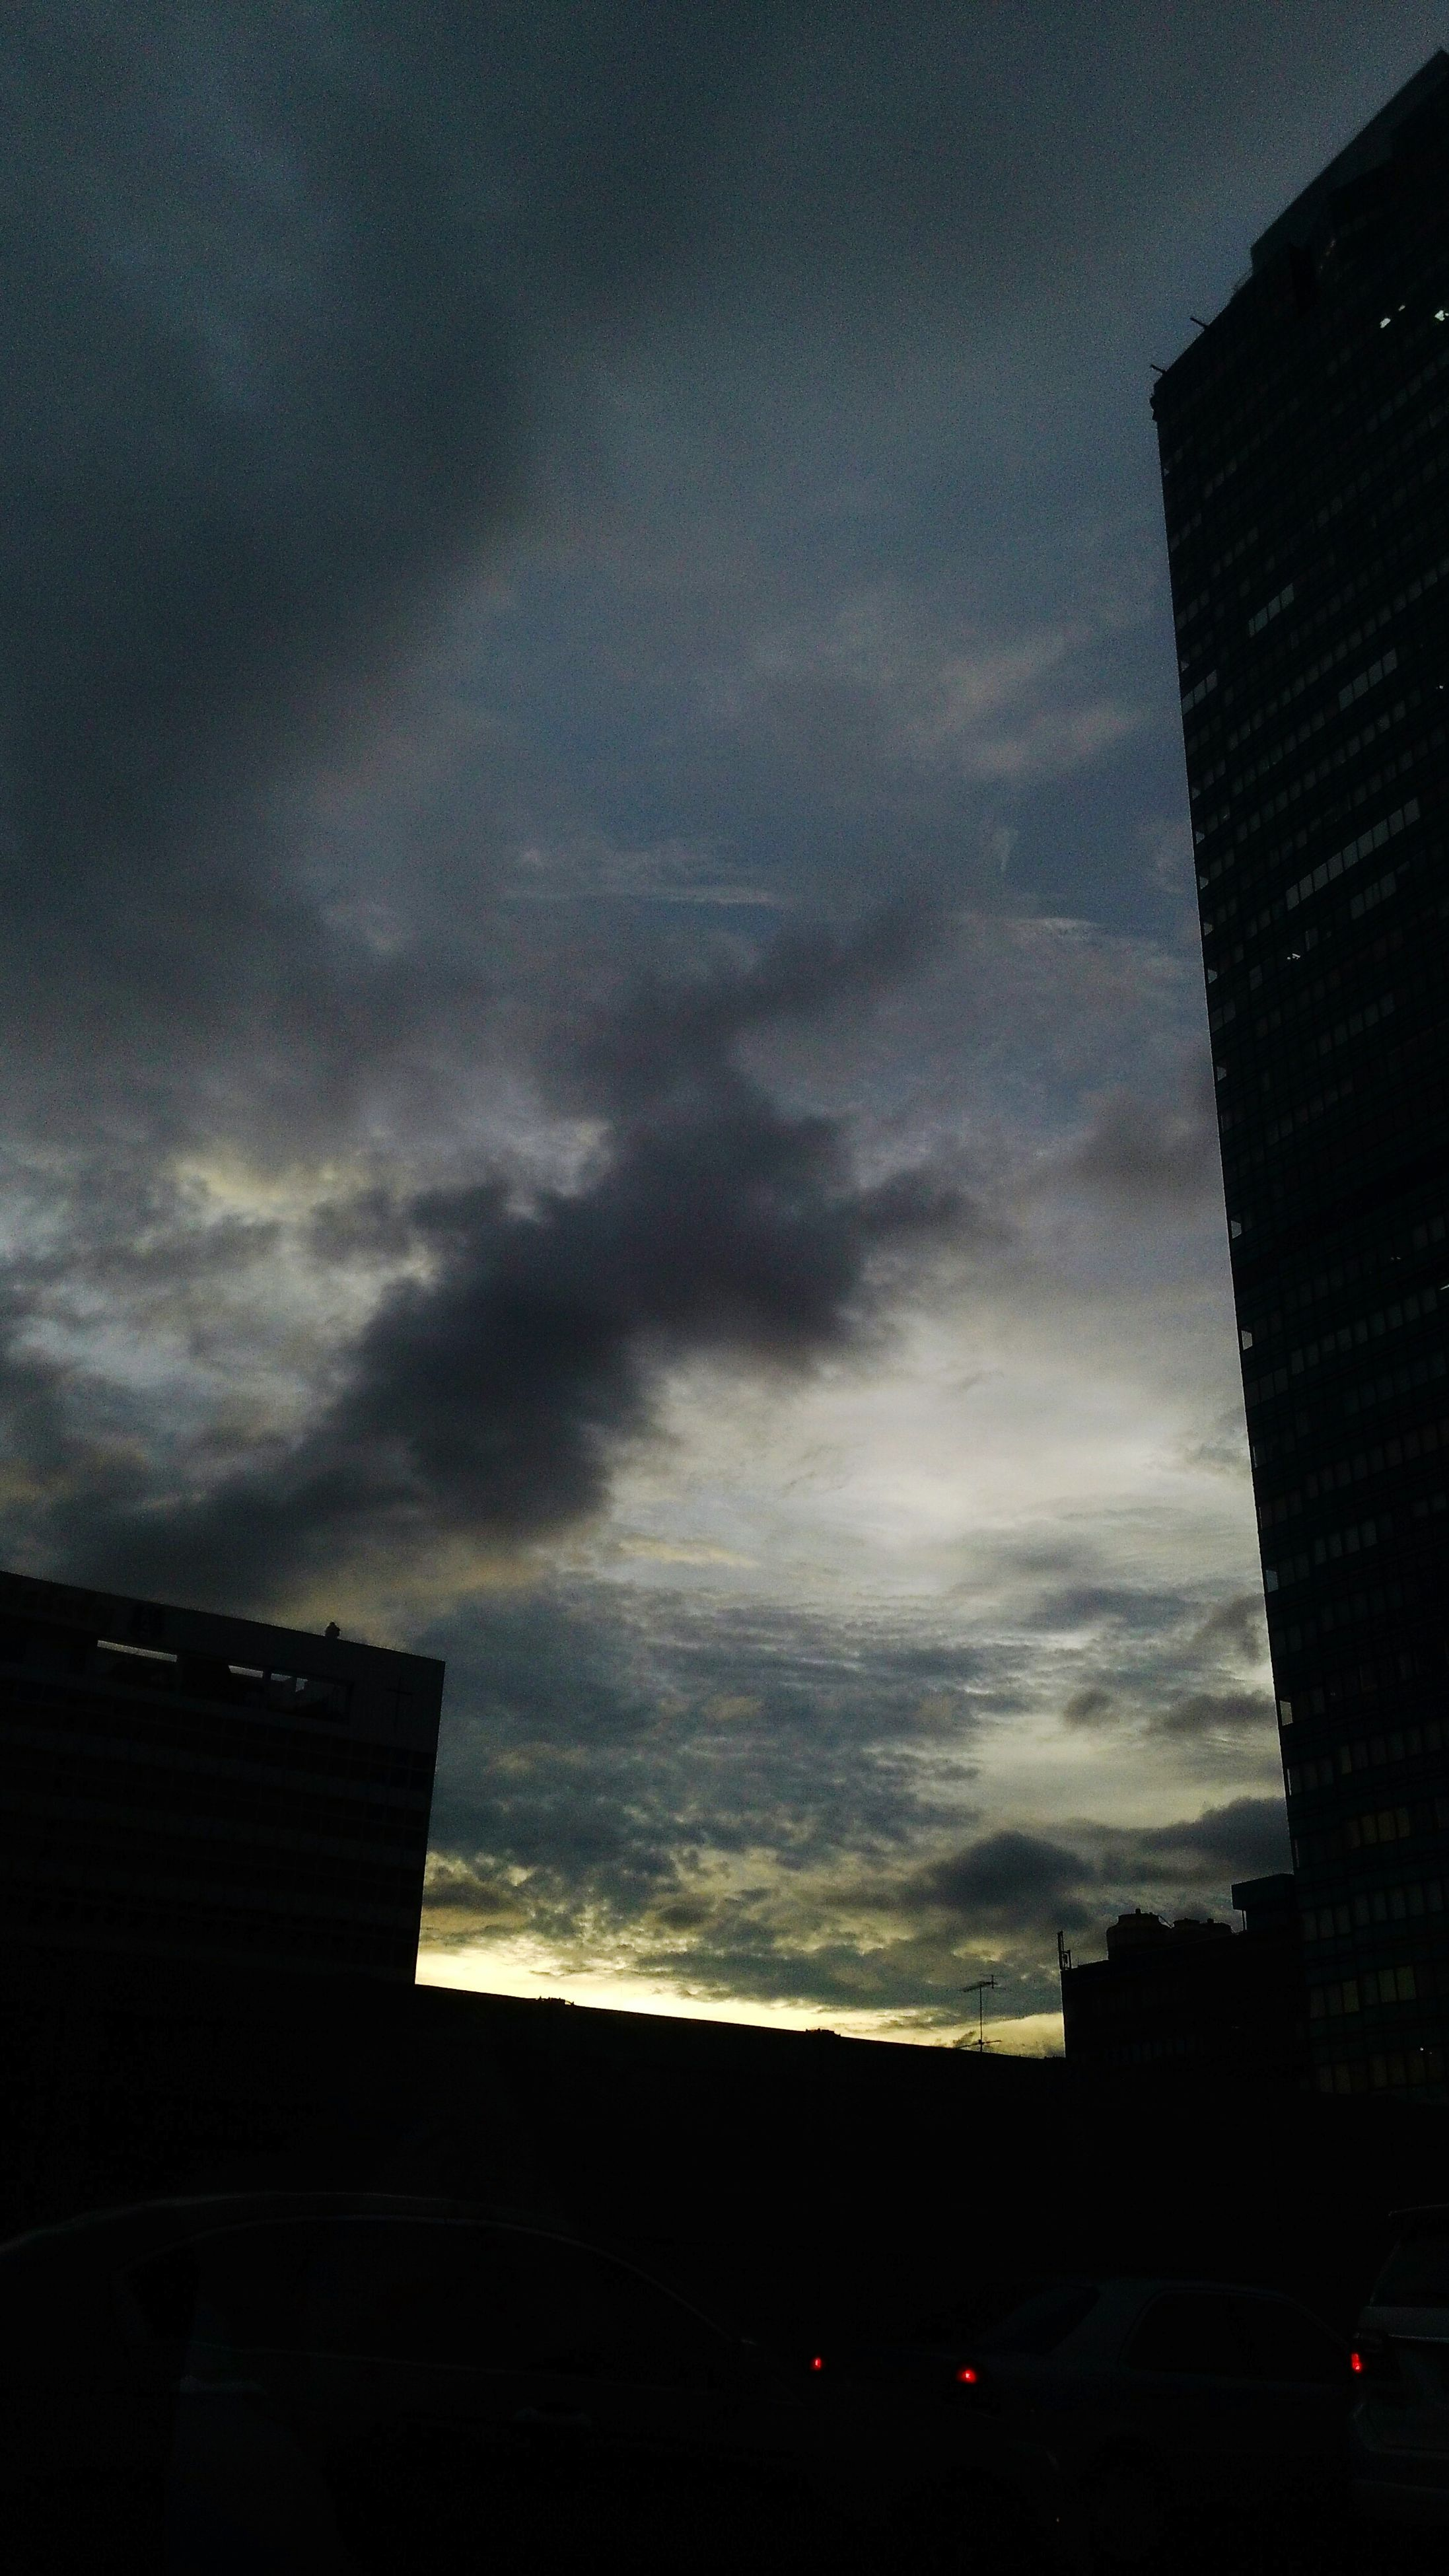 building exterior, architecture, built structure, city, sky, cloud - sky, low angle view, skyscraper, building, silhouette, cloudy, office building, tall - high, dusk, city life, sunset, modern, cloud, residential building, tower